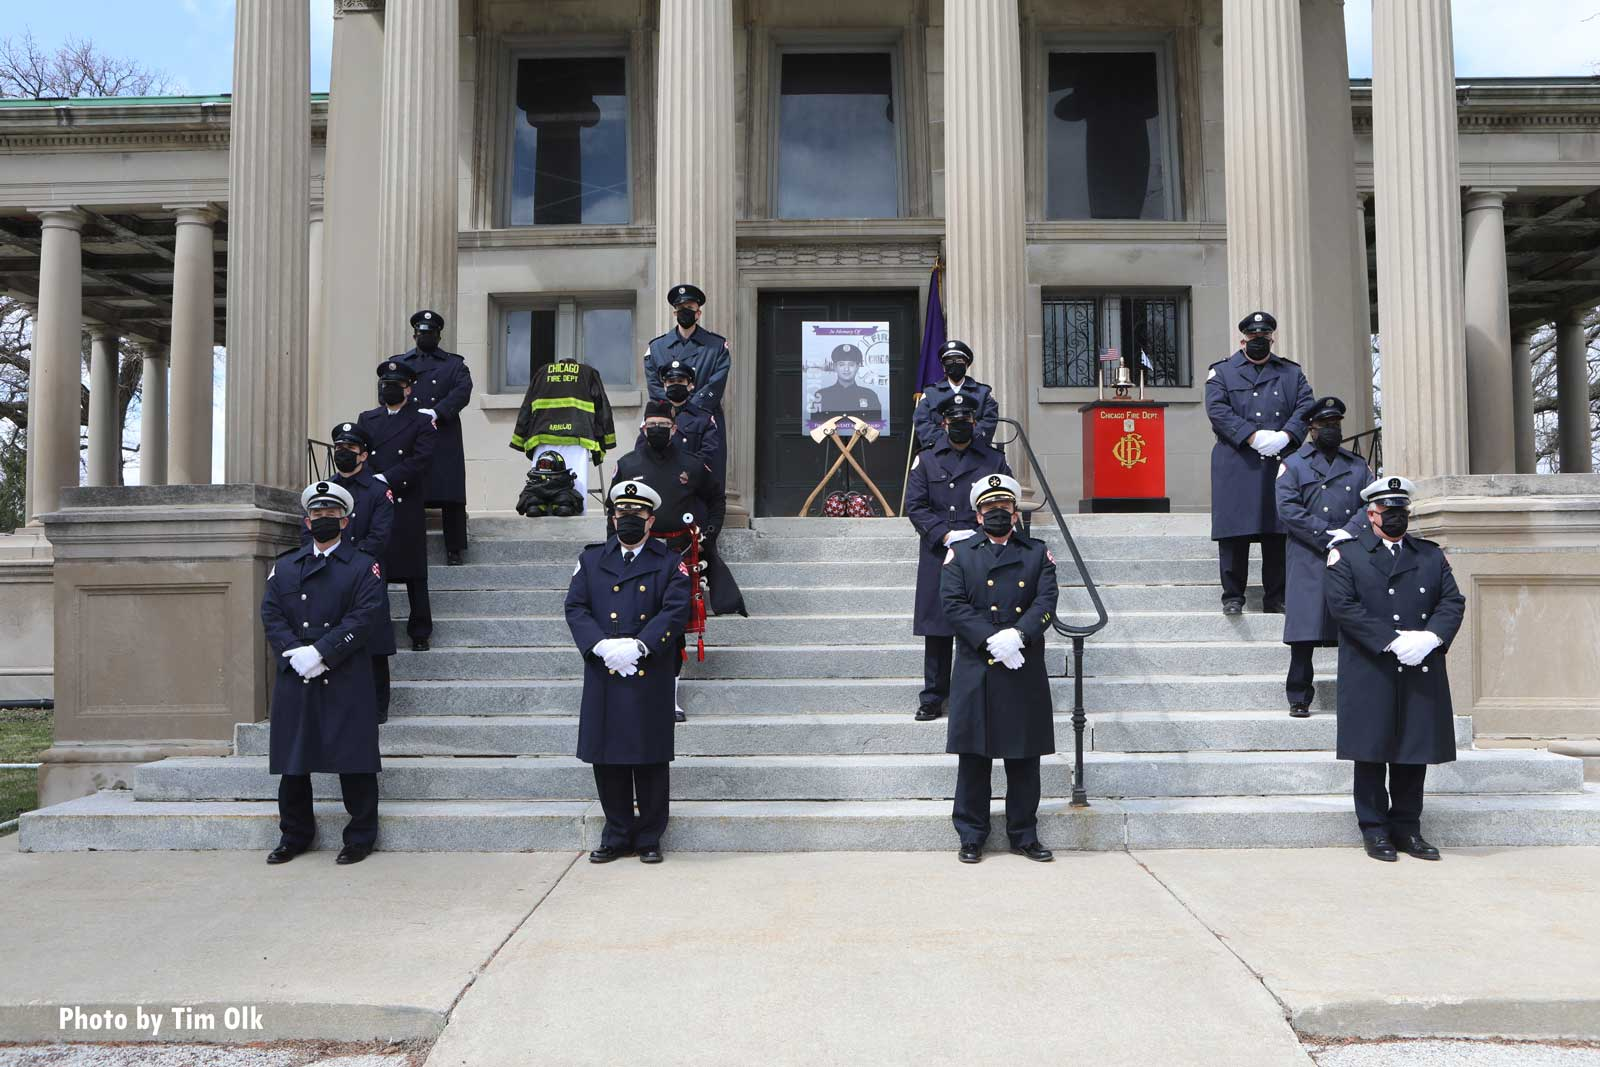 Firefighters lined up to honor late Chicago Firefighter Araujo